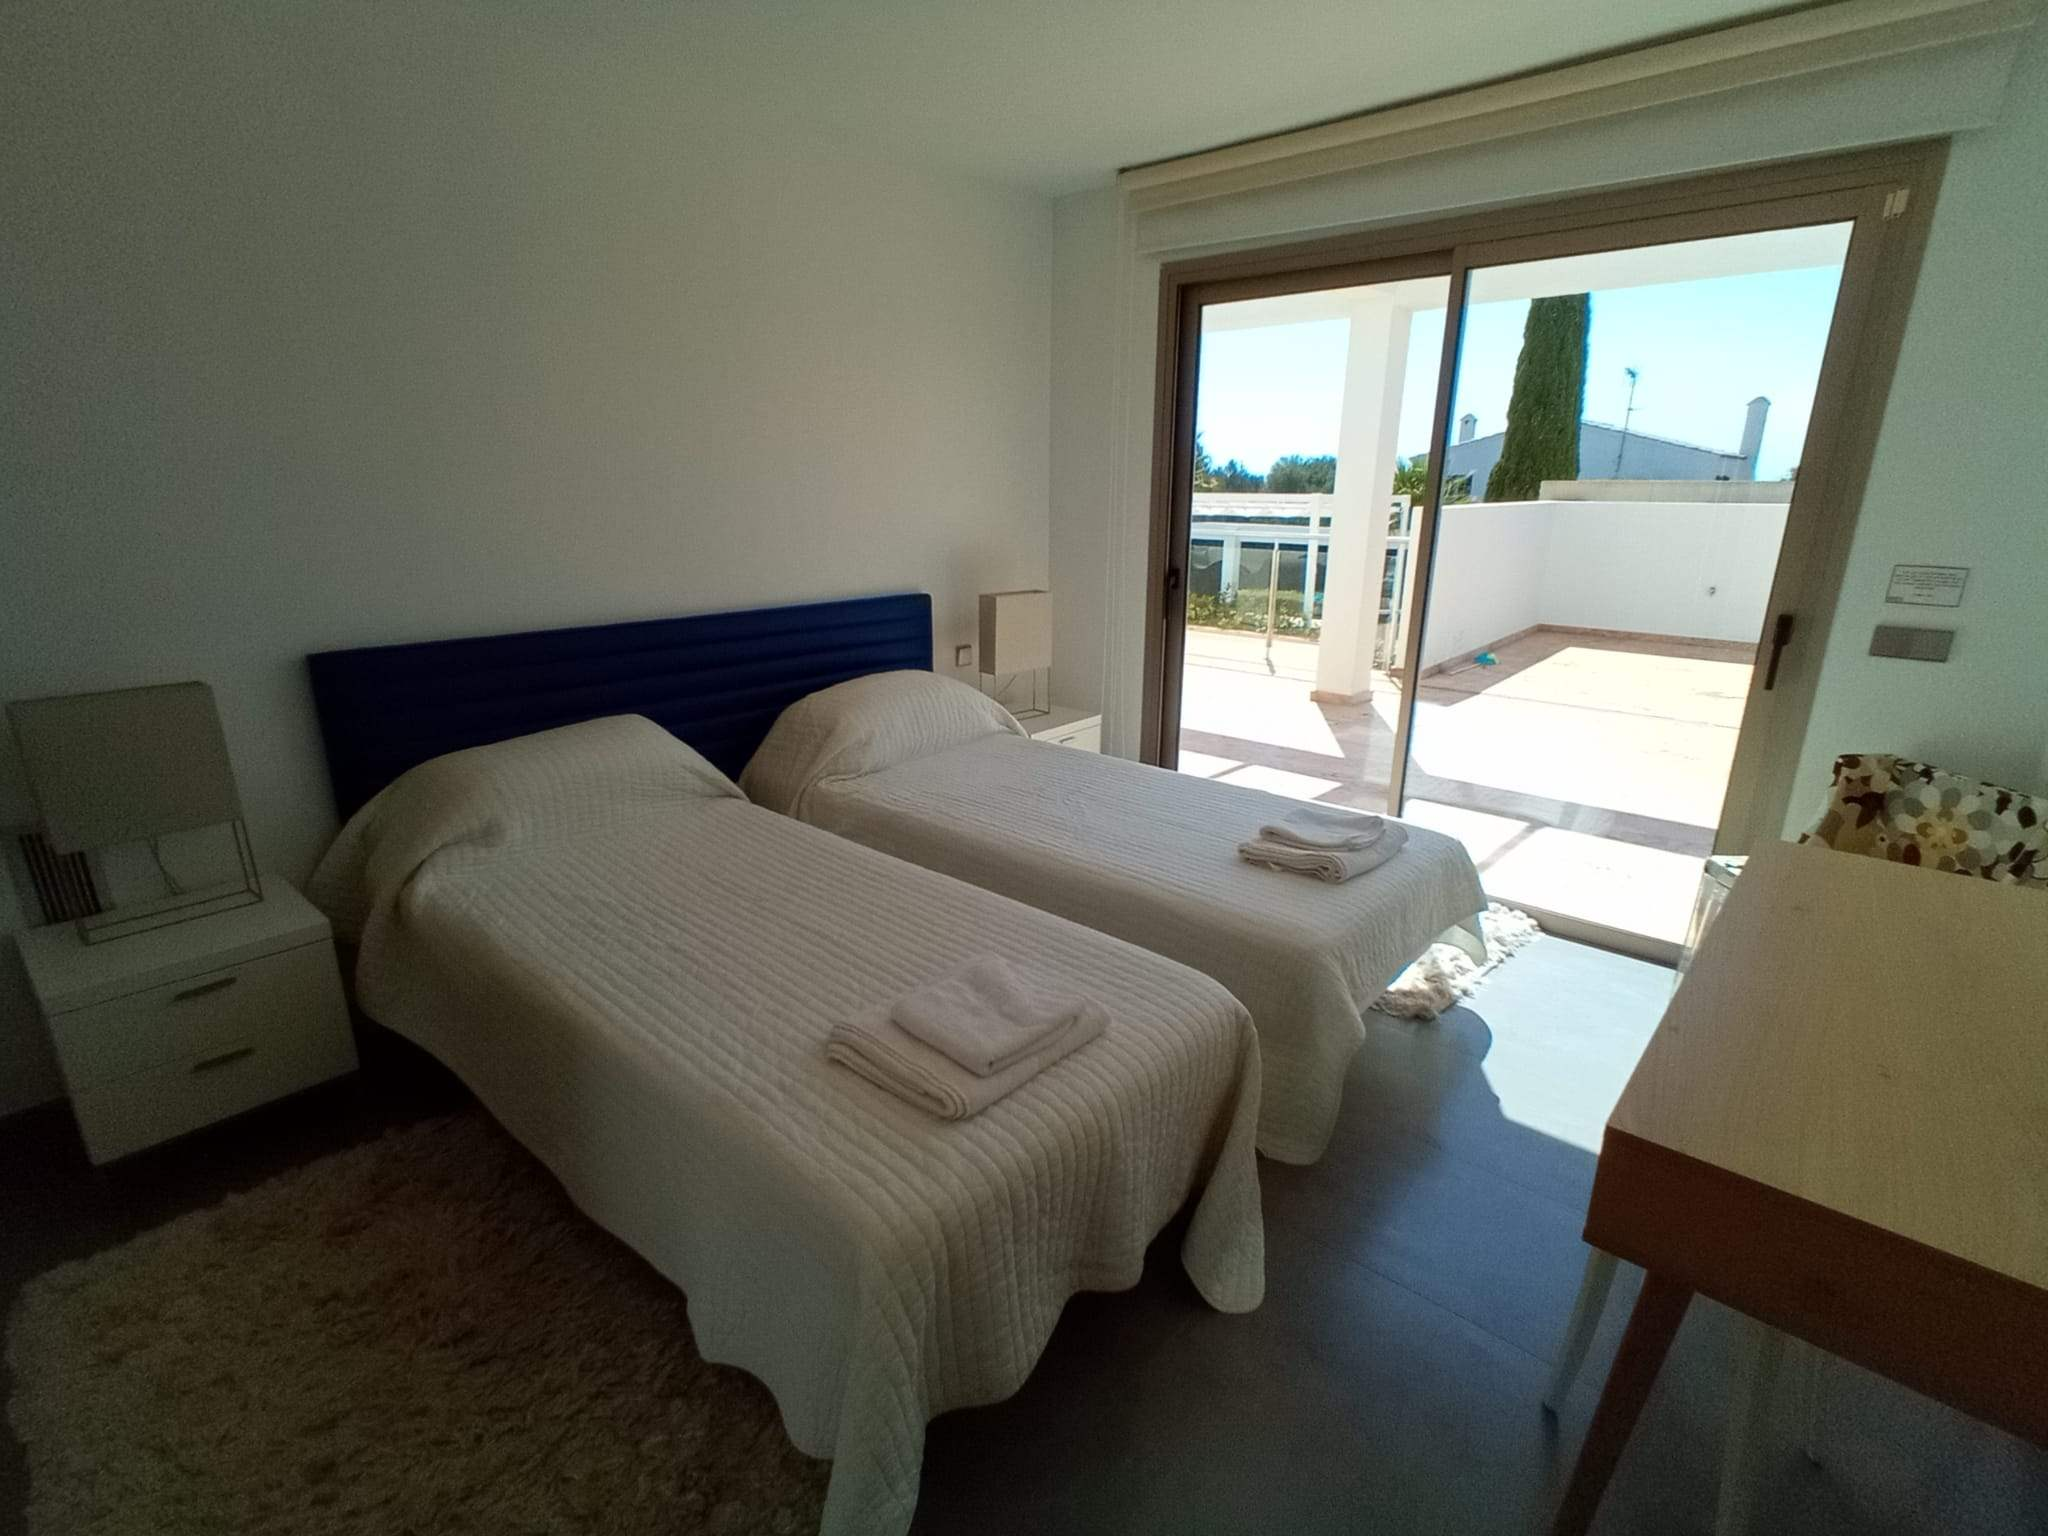 Casa Pitiusa, 4 Bedroom rate, 4 bedroom villa in Mahon, San Luis & South East, Menorca Photo #17